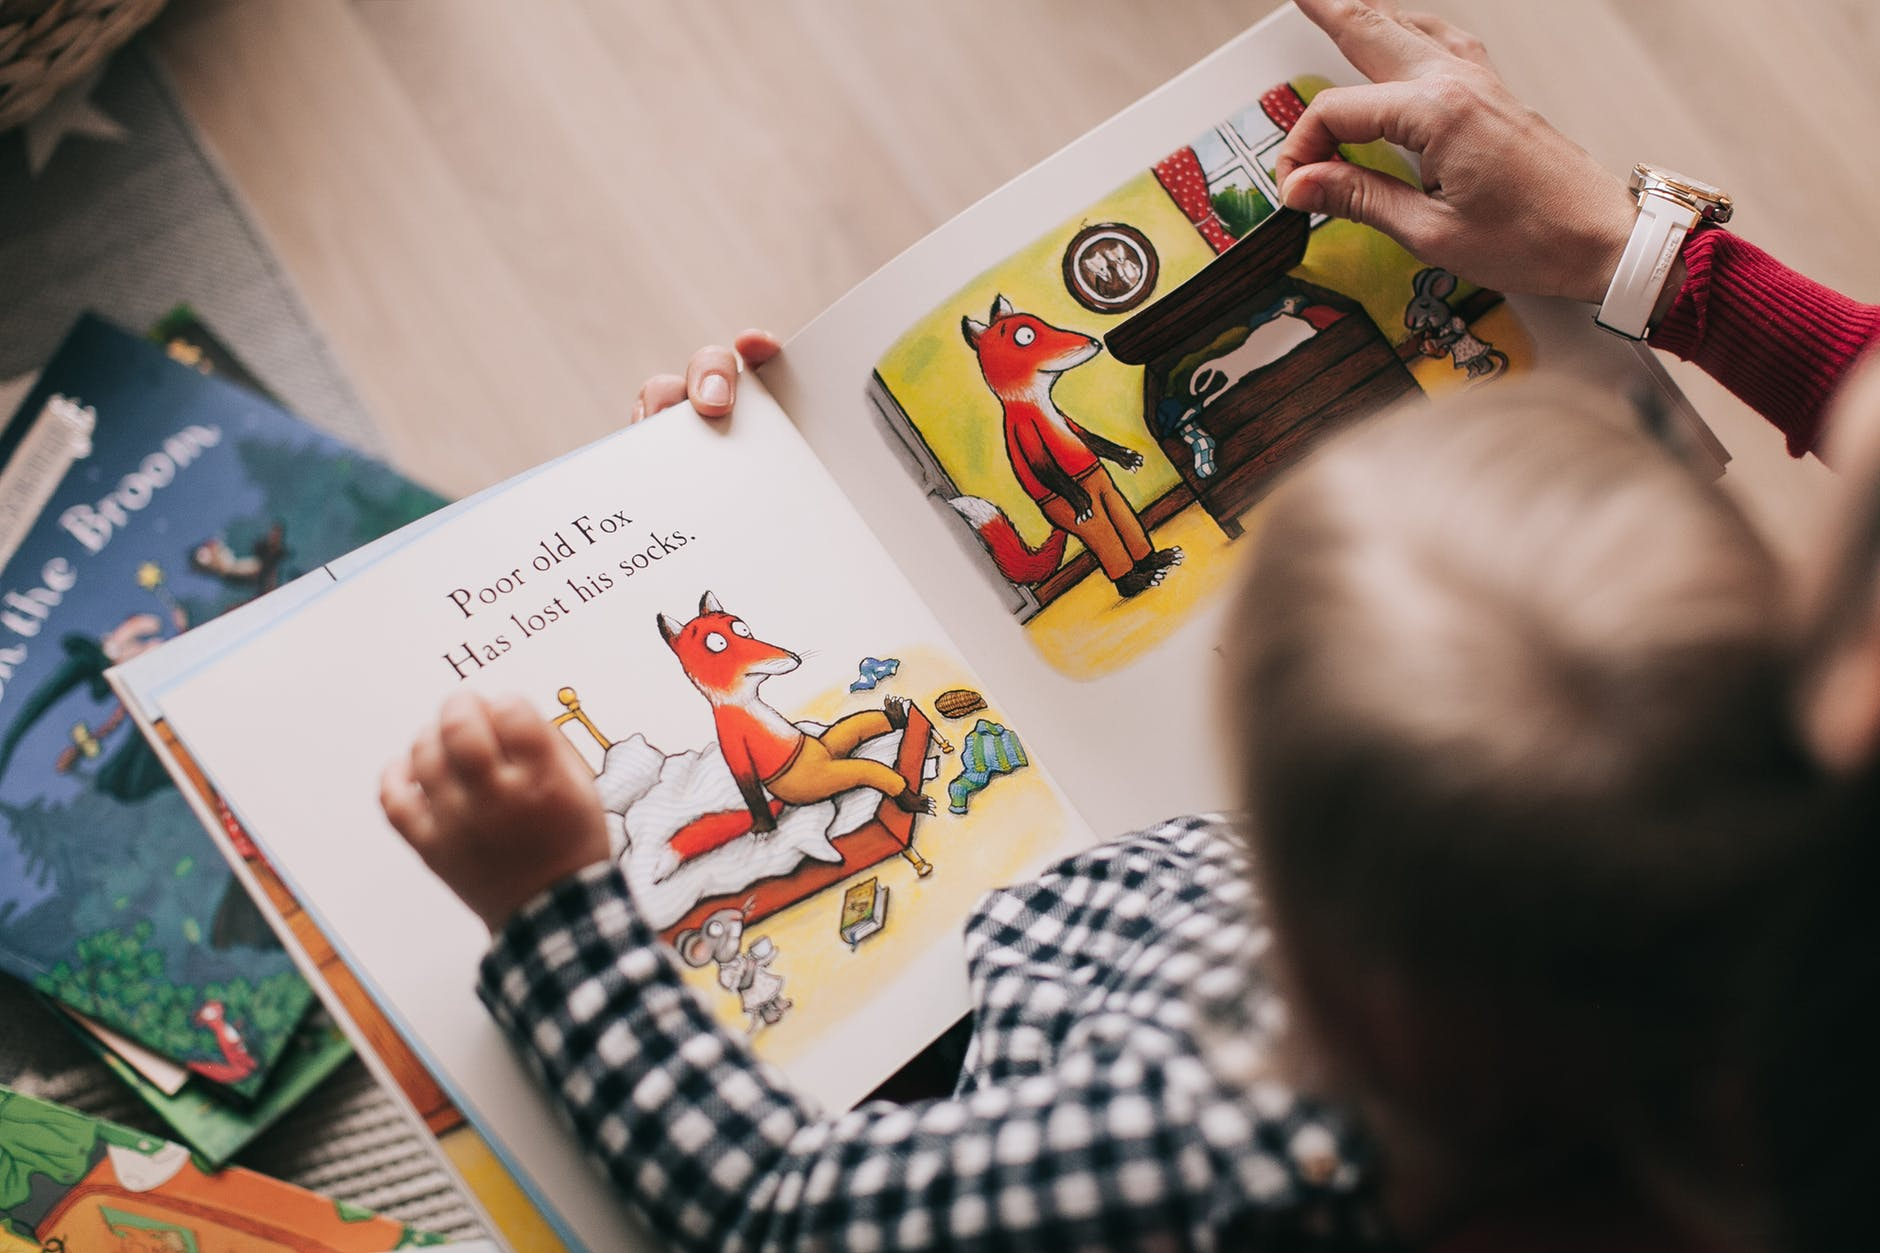 Print books > digital when reading to your kid